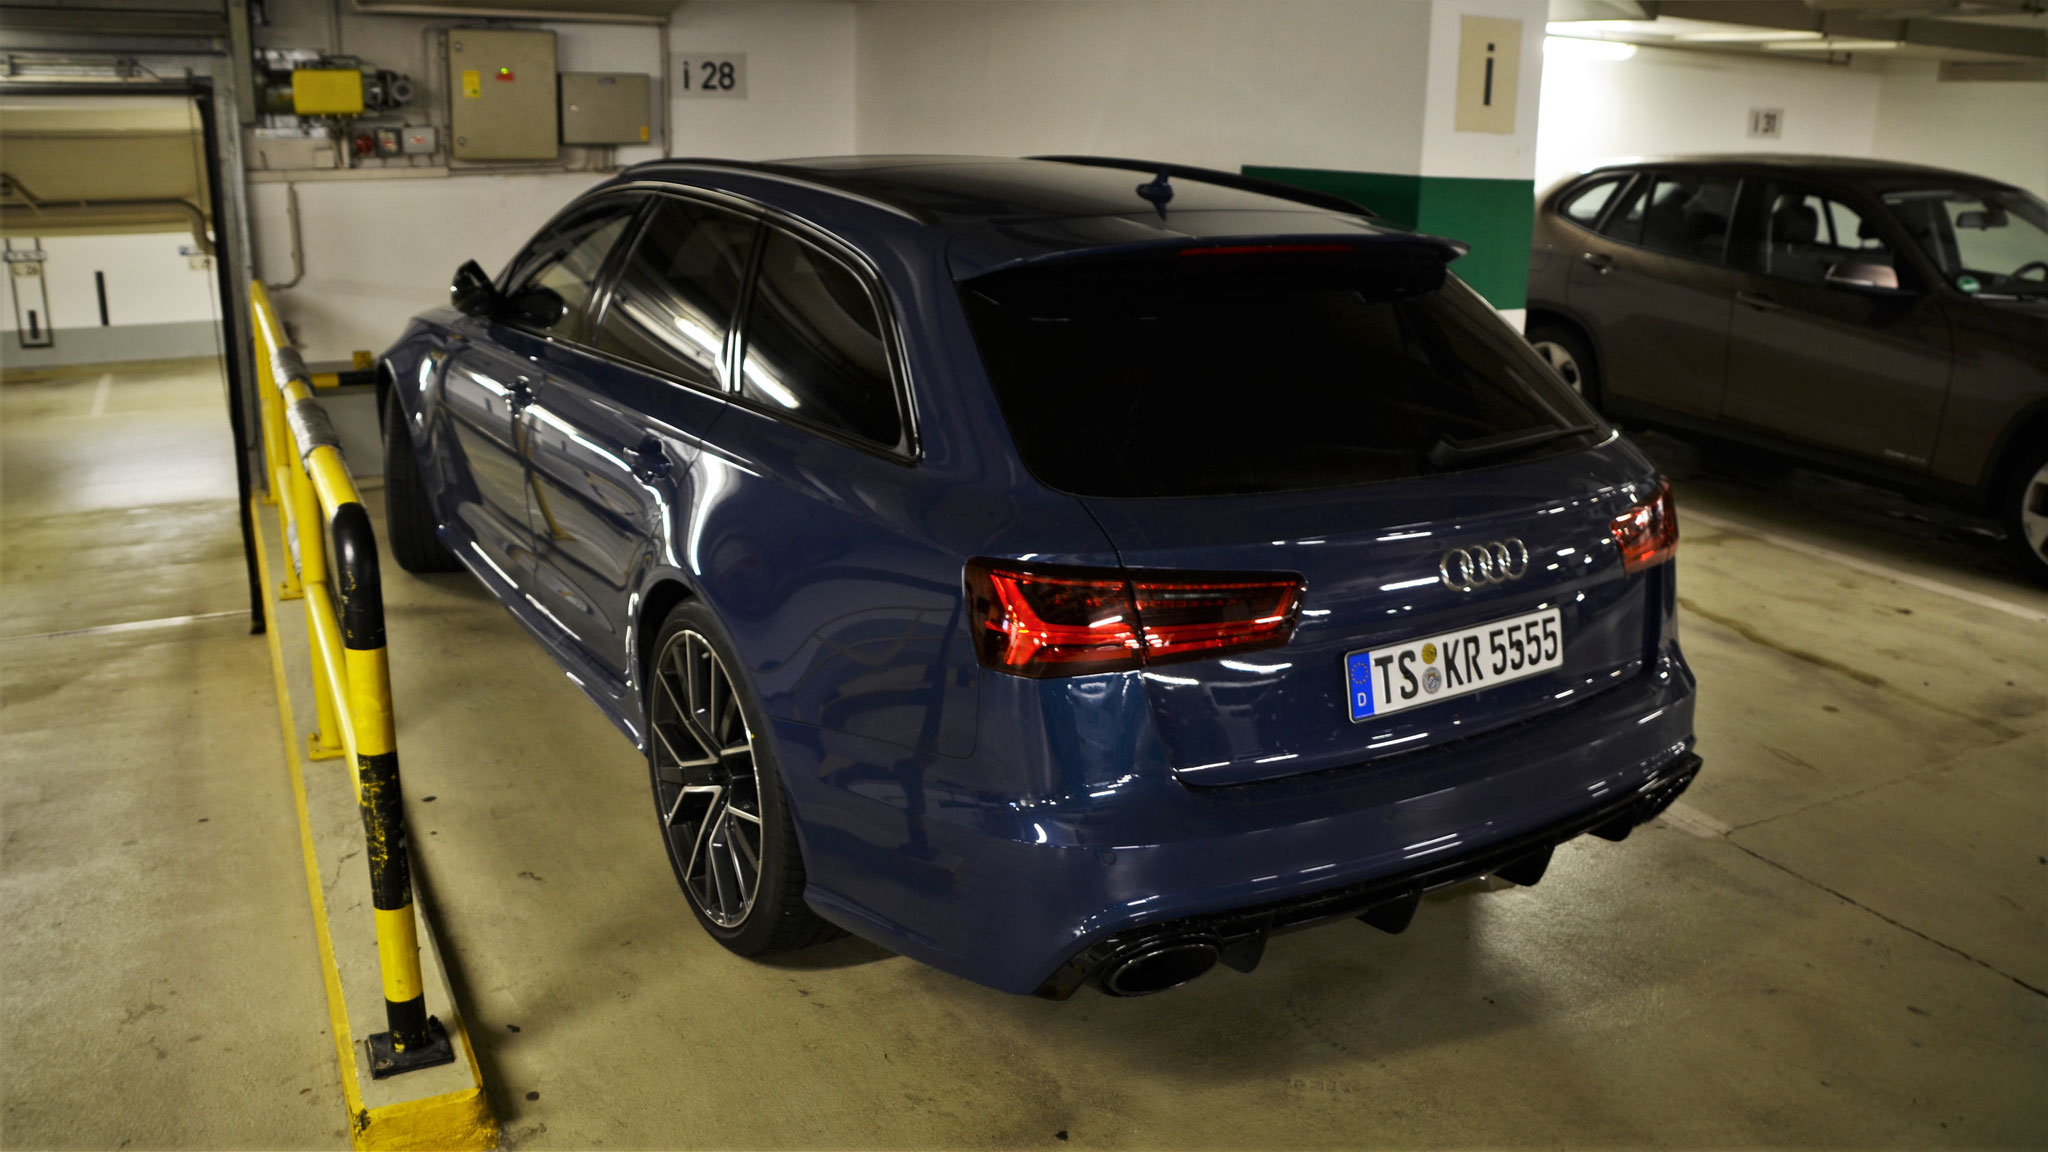 Audi RS6 Performance Nogaro Edition - TS-KR-5555